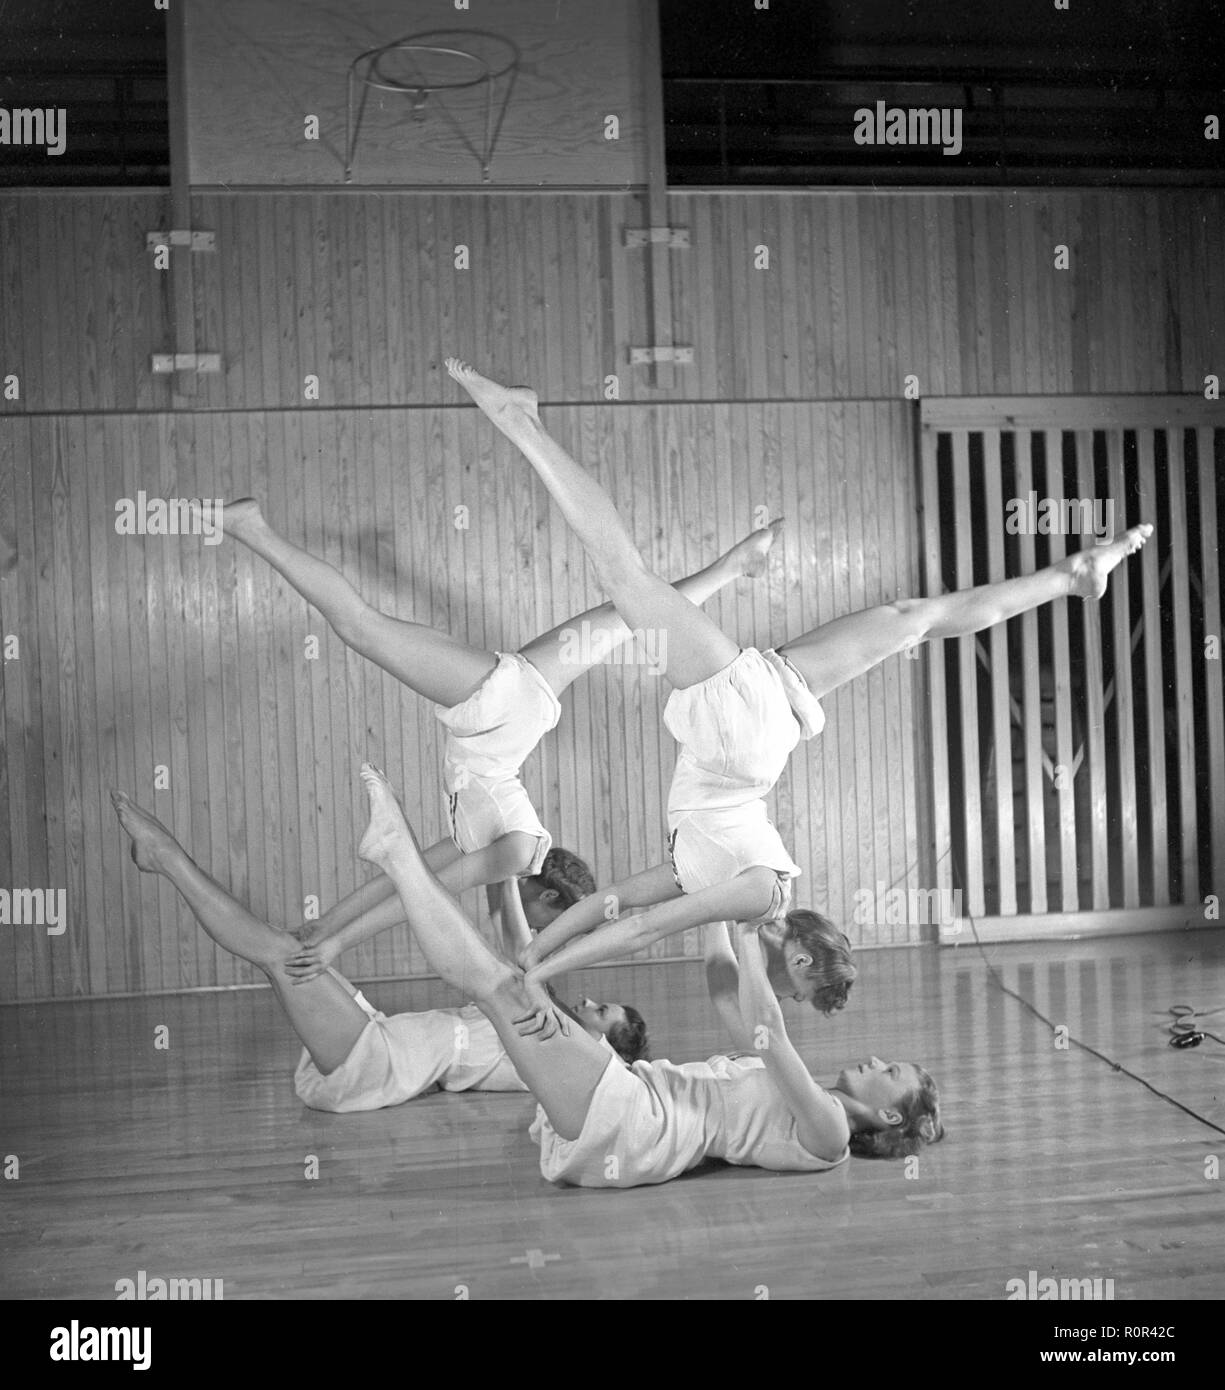 Gymnastics in the 1940s. Four young female gymnasts are practicing together and doing the same movement. 1940s Sweden Photo Kristoffersson ref M106-6 - Stock Image